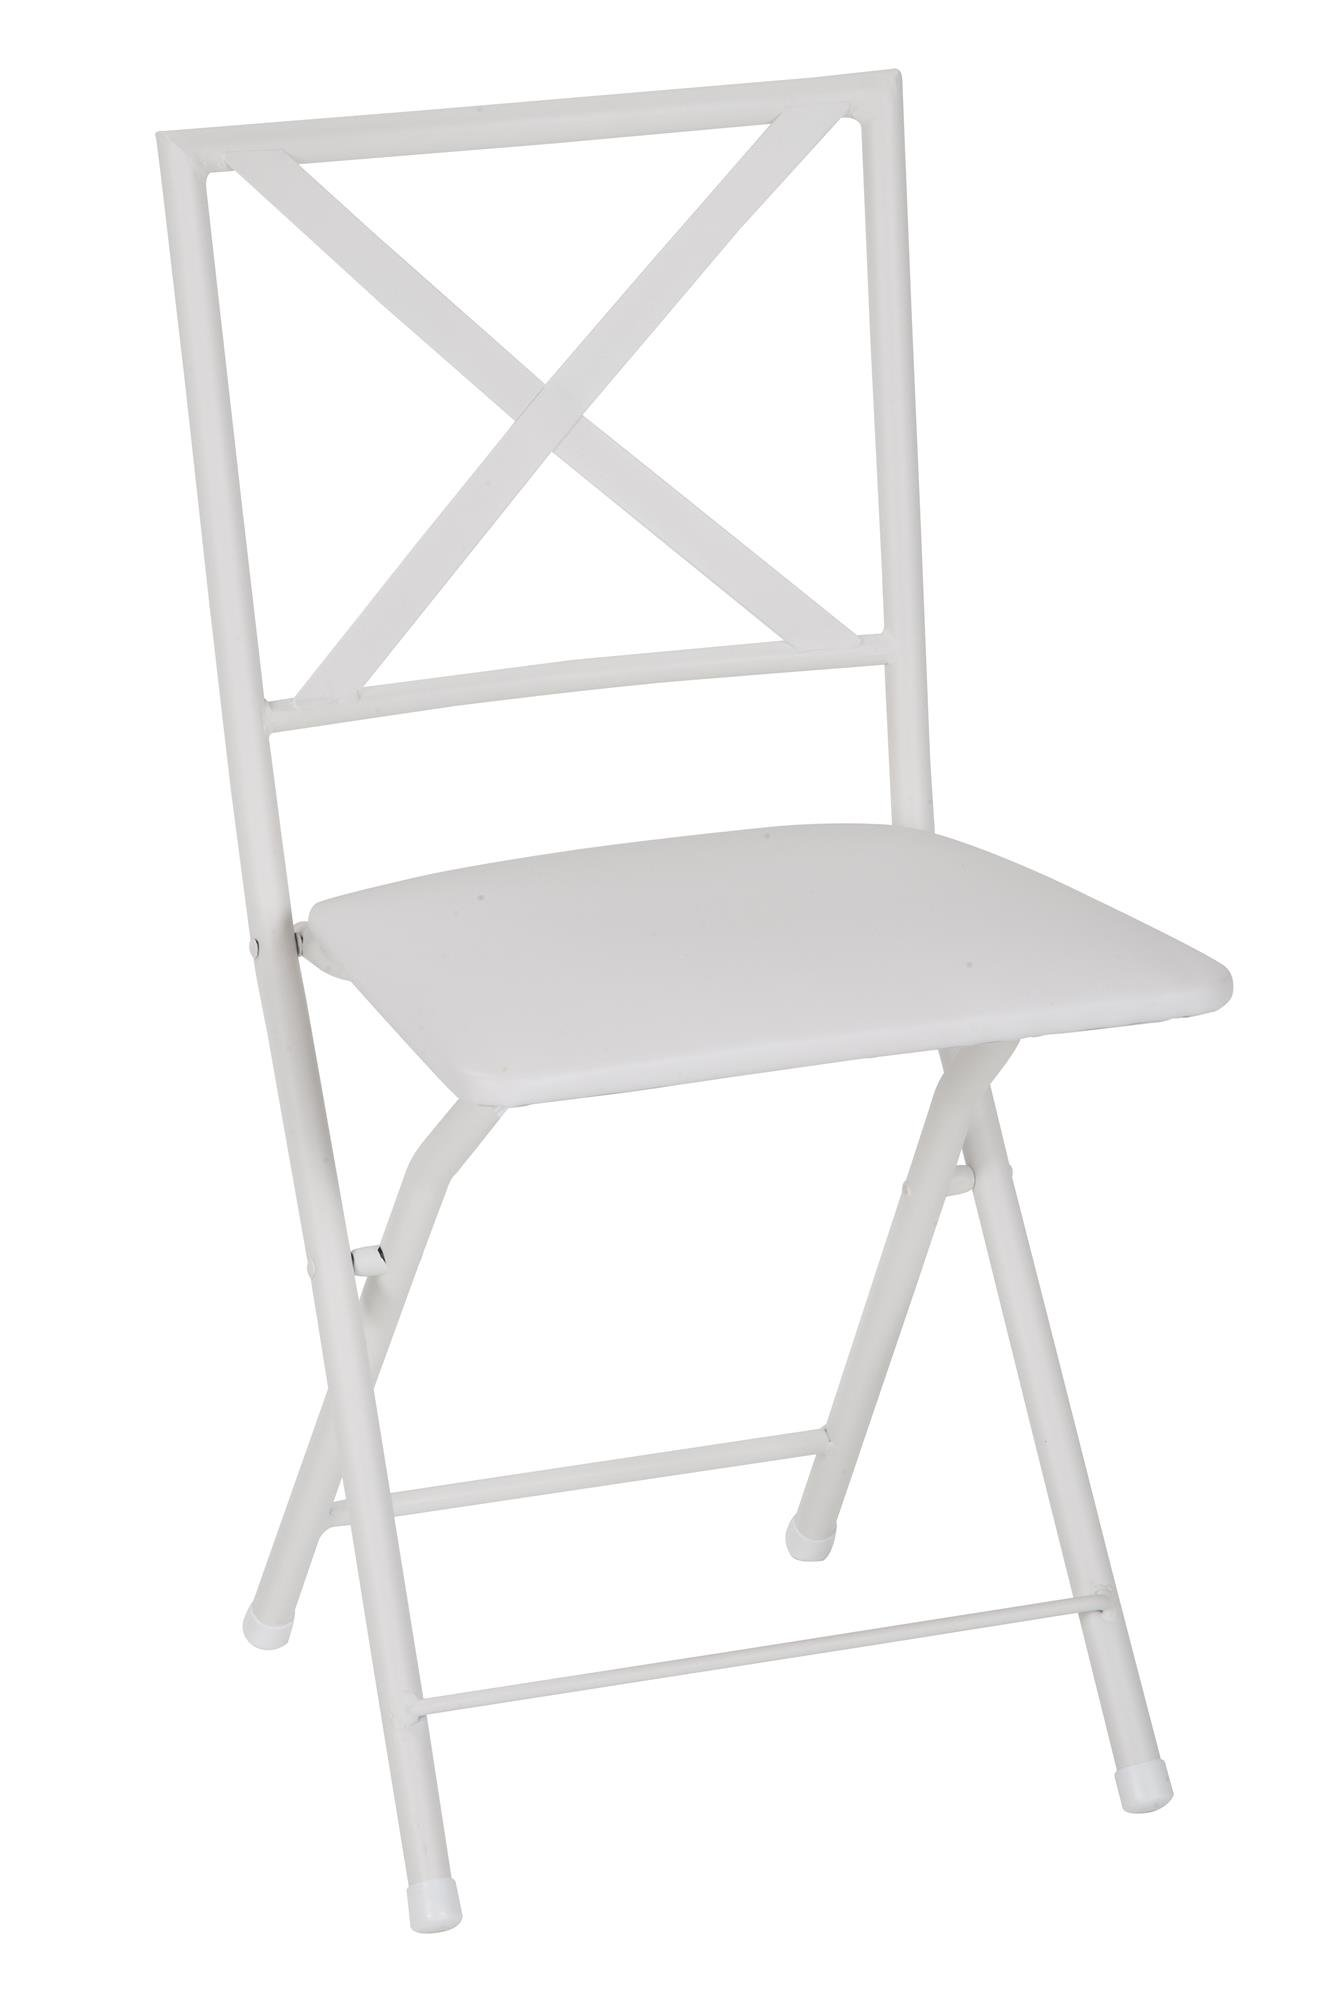 Cosco Products COSCO X-Back Metal Folding Dining Chair Vinyl Seat, White, 4 Pack